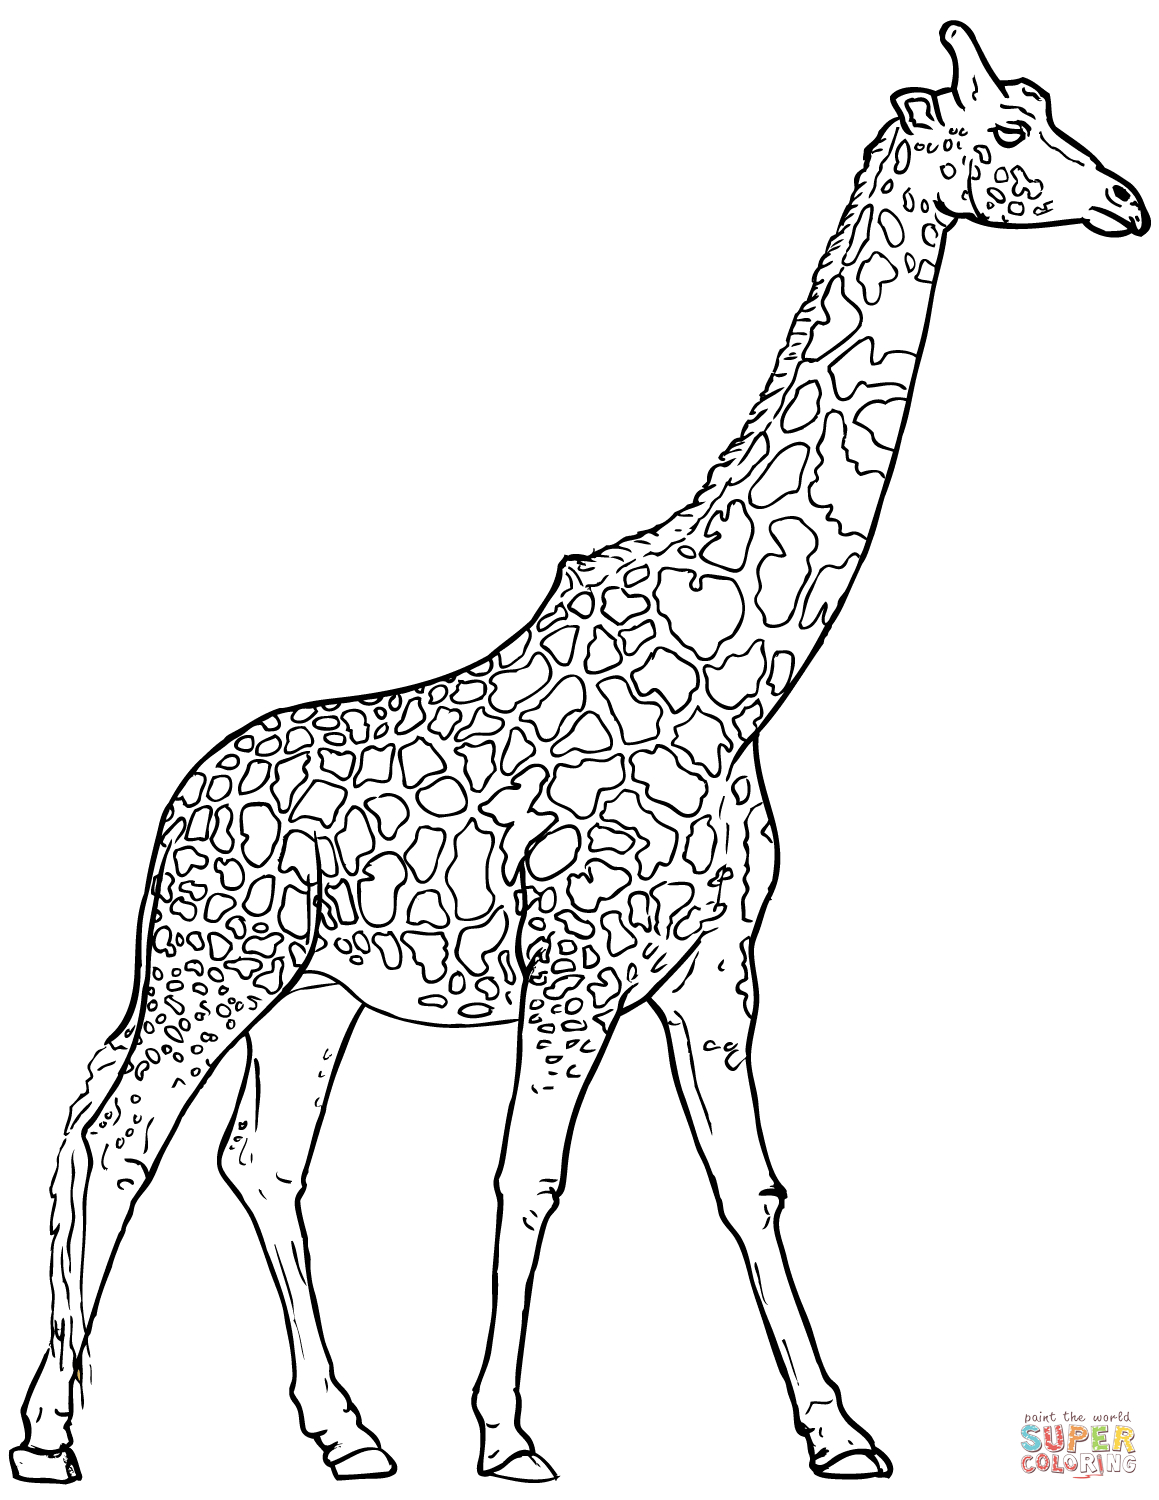 21+ Exclusive Picture of Giraffe Coloring Pages